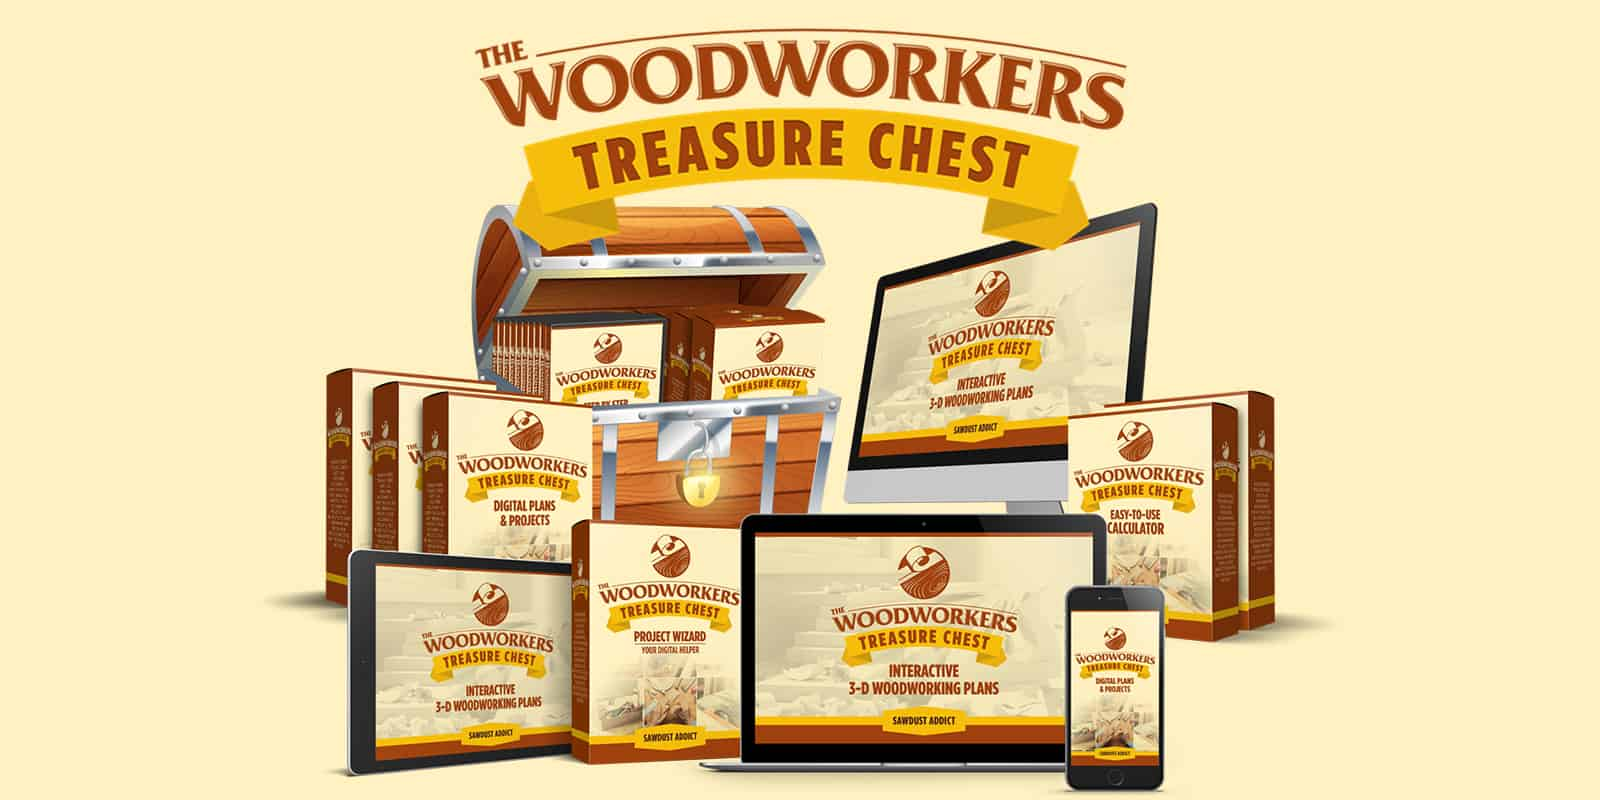 The Woodworkers Treasure Chest Review